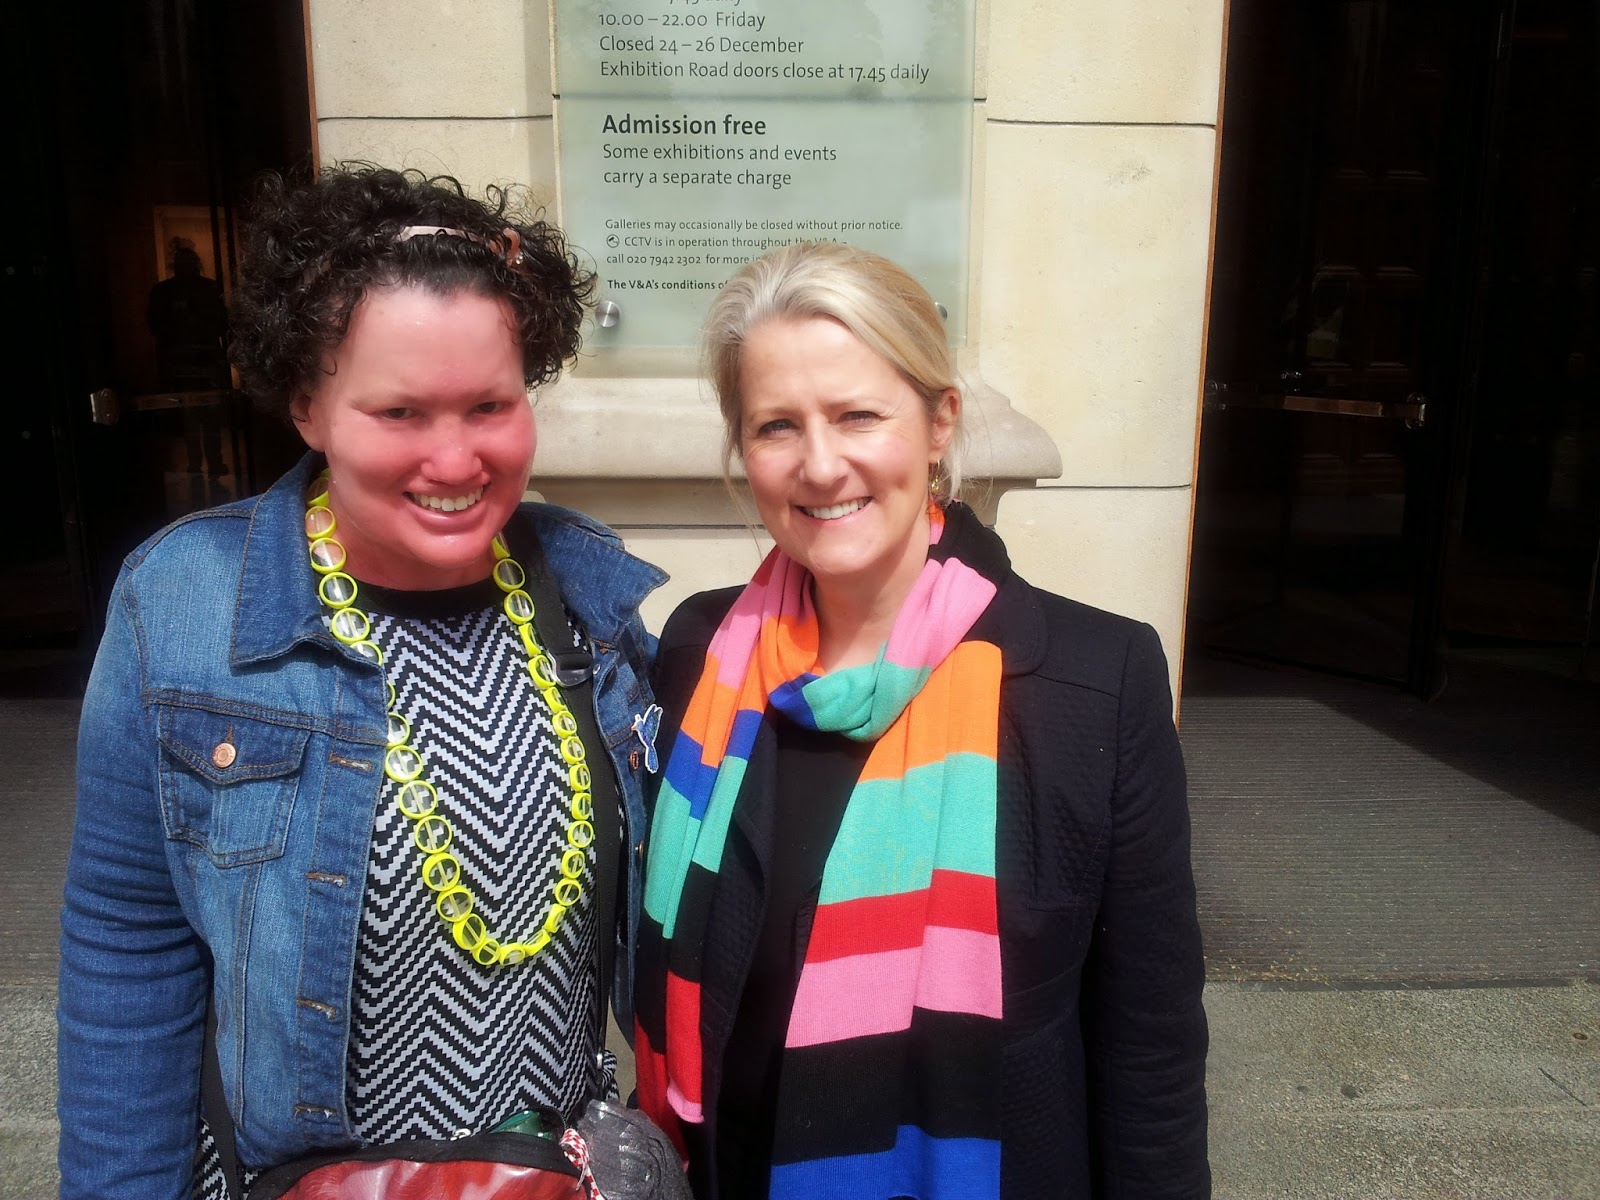 Carly Findlay and Maggie Alderson outside the Victoria and Albert Museum London